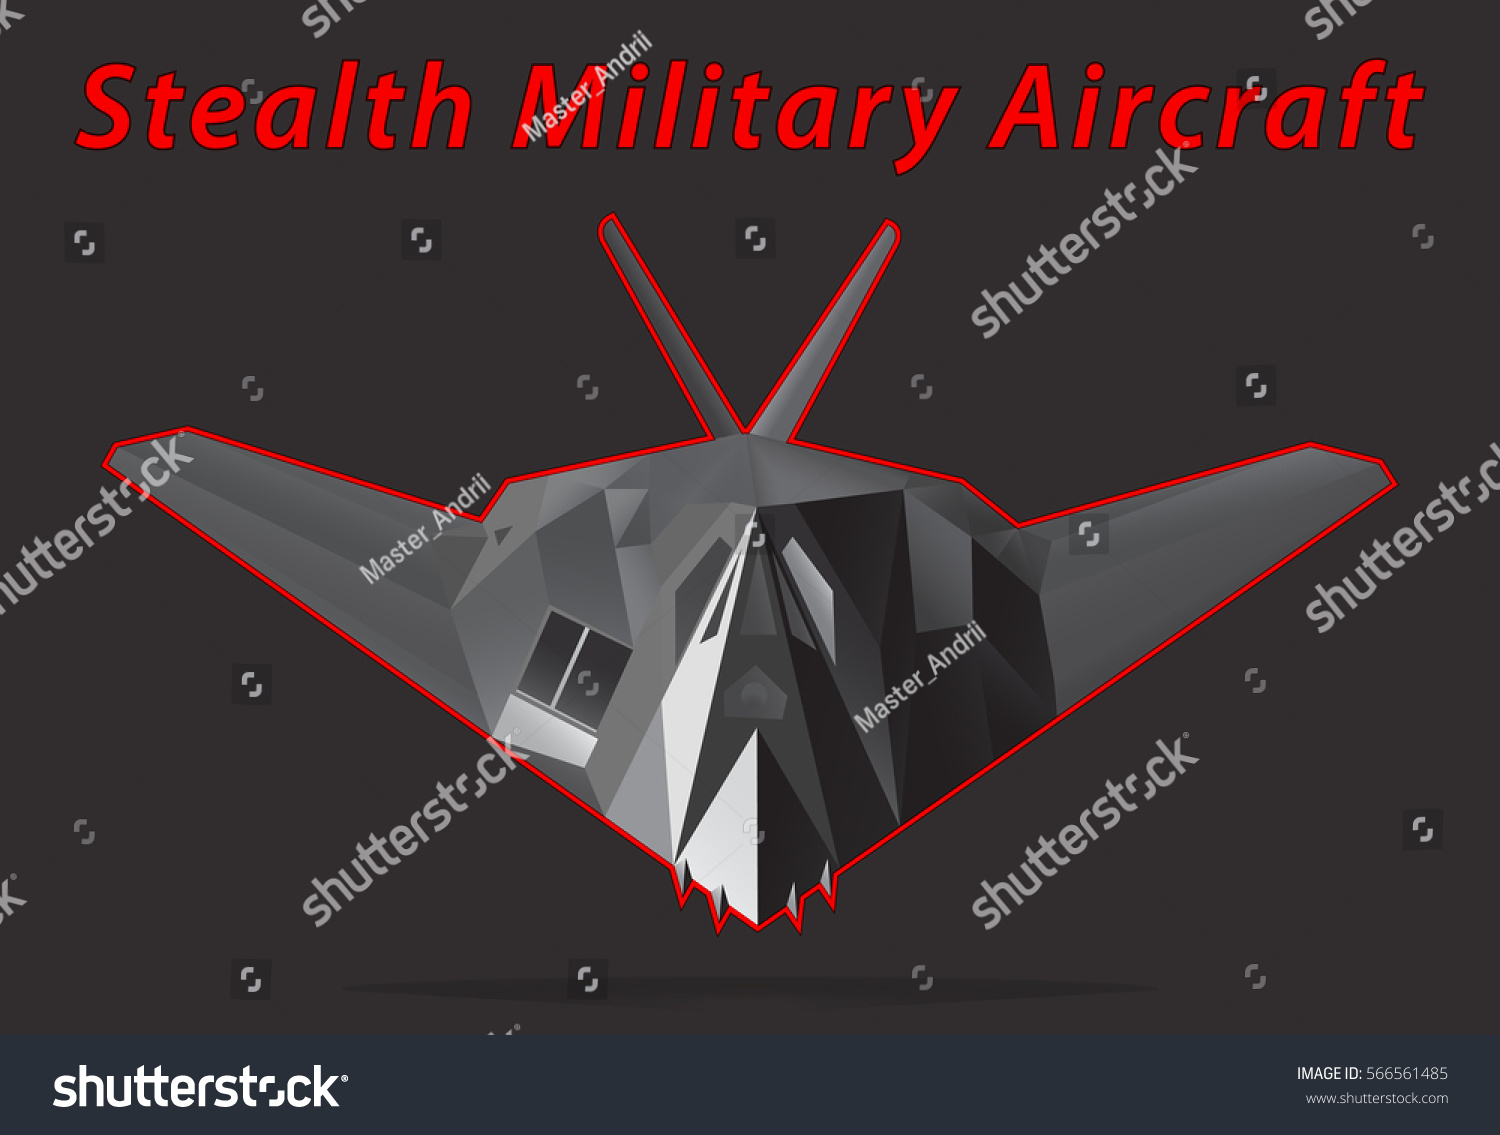 Stealth Military Aircraft Black Background Vector Stock Vector 1500x1135